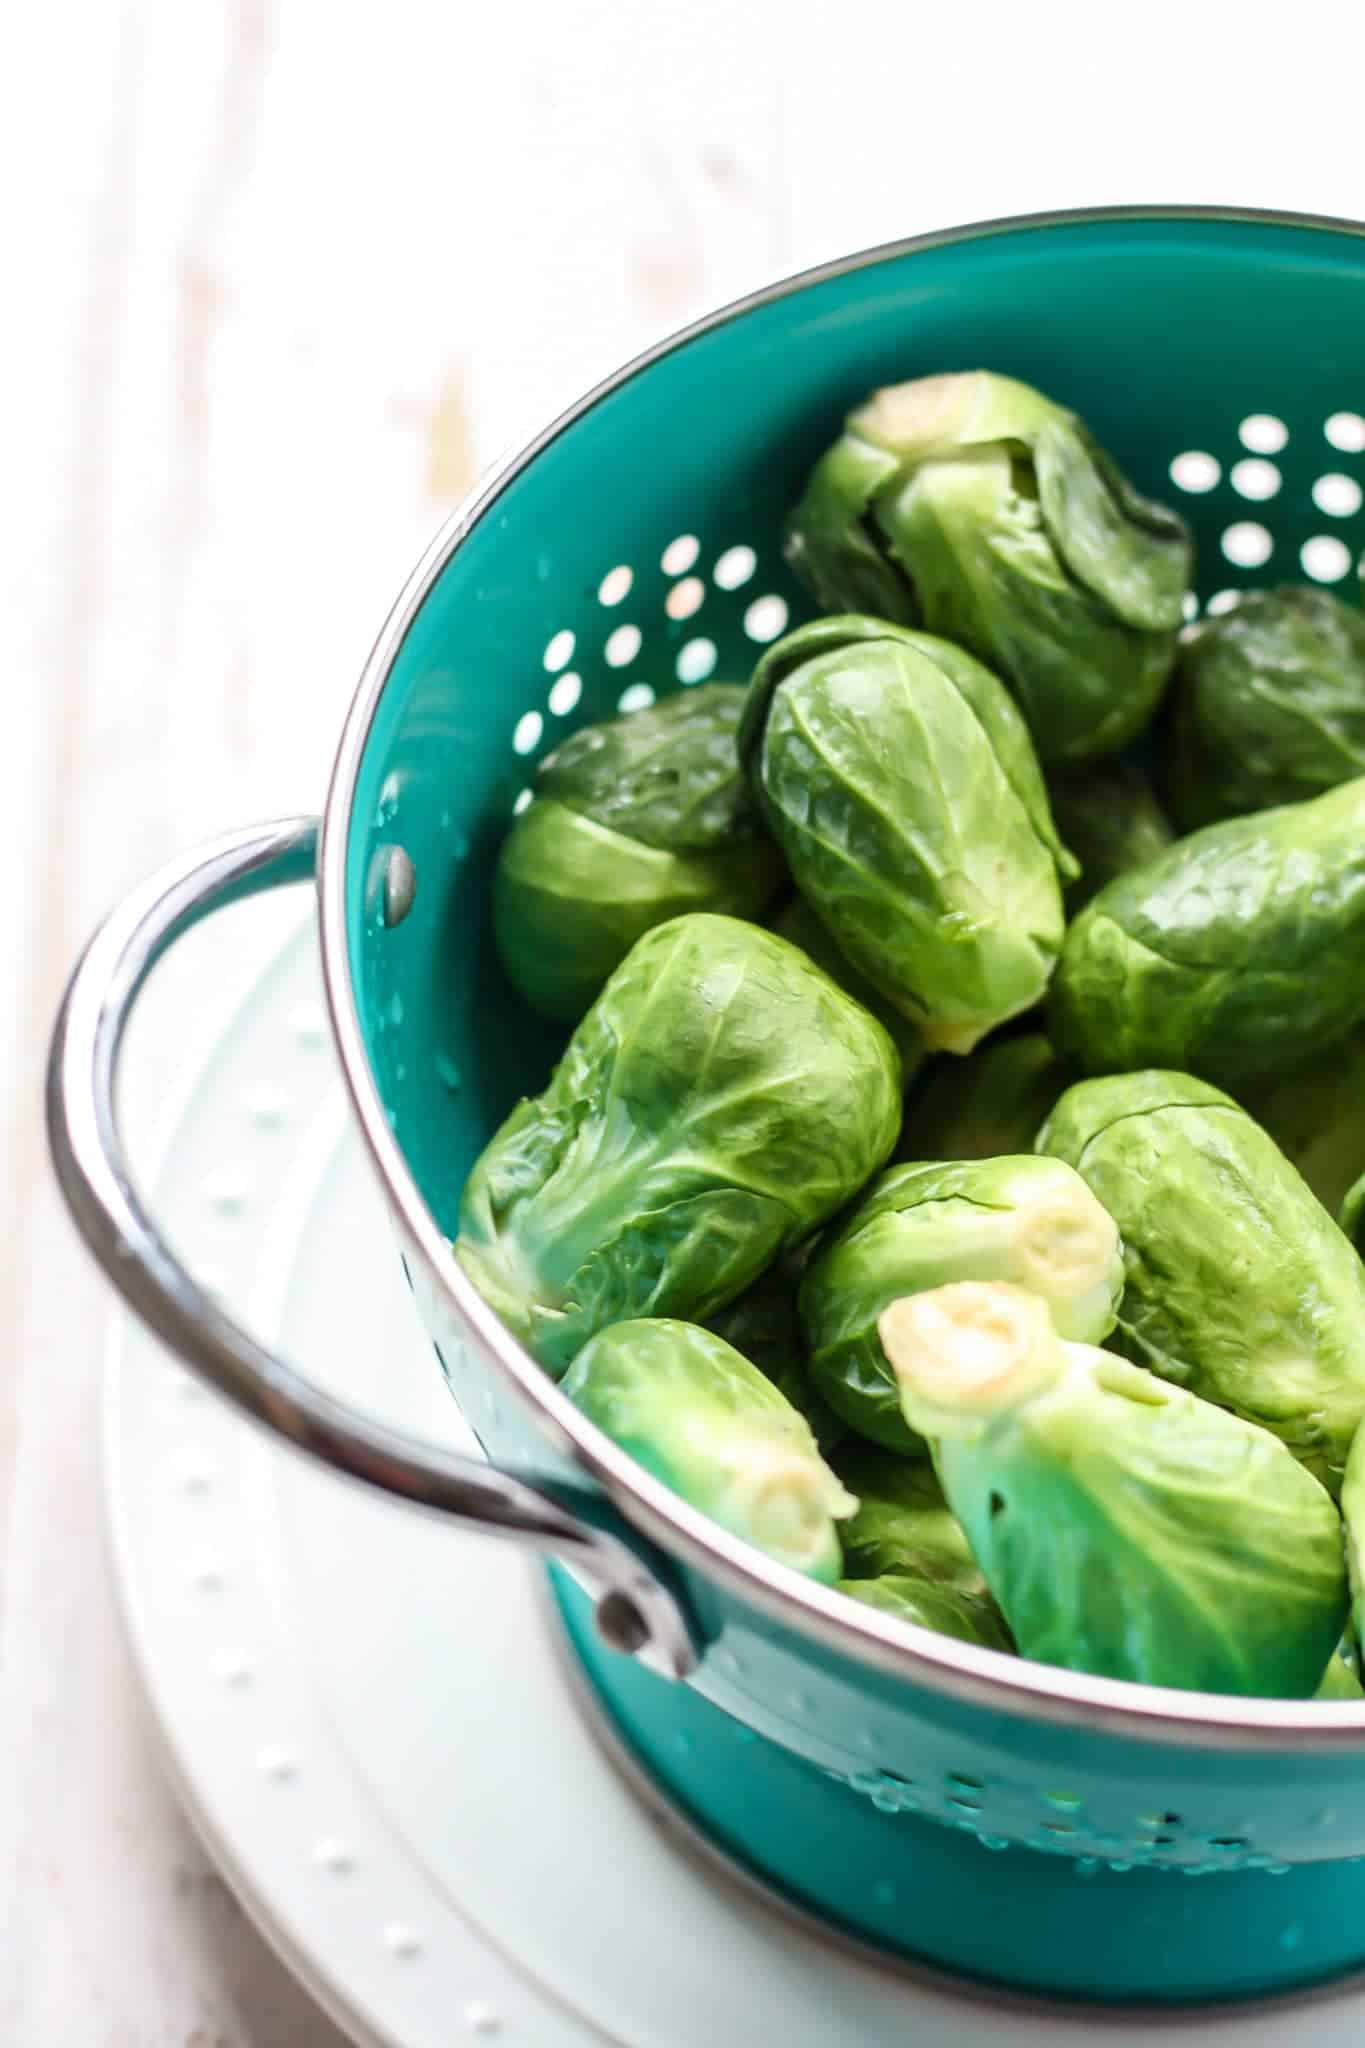 brussel sprouts in teal strainer